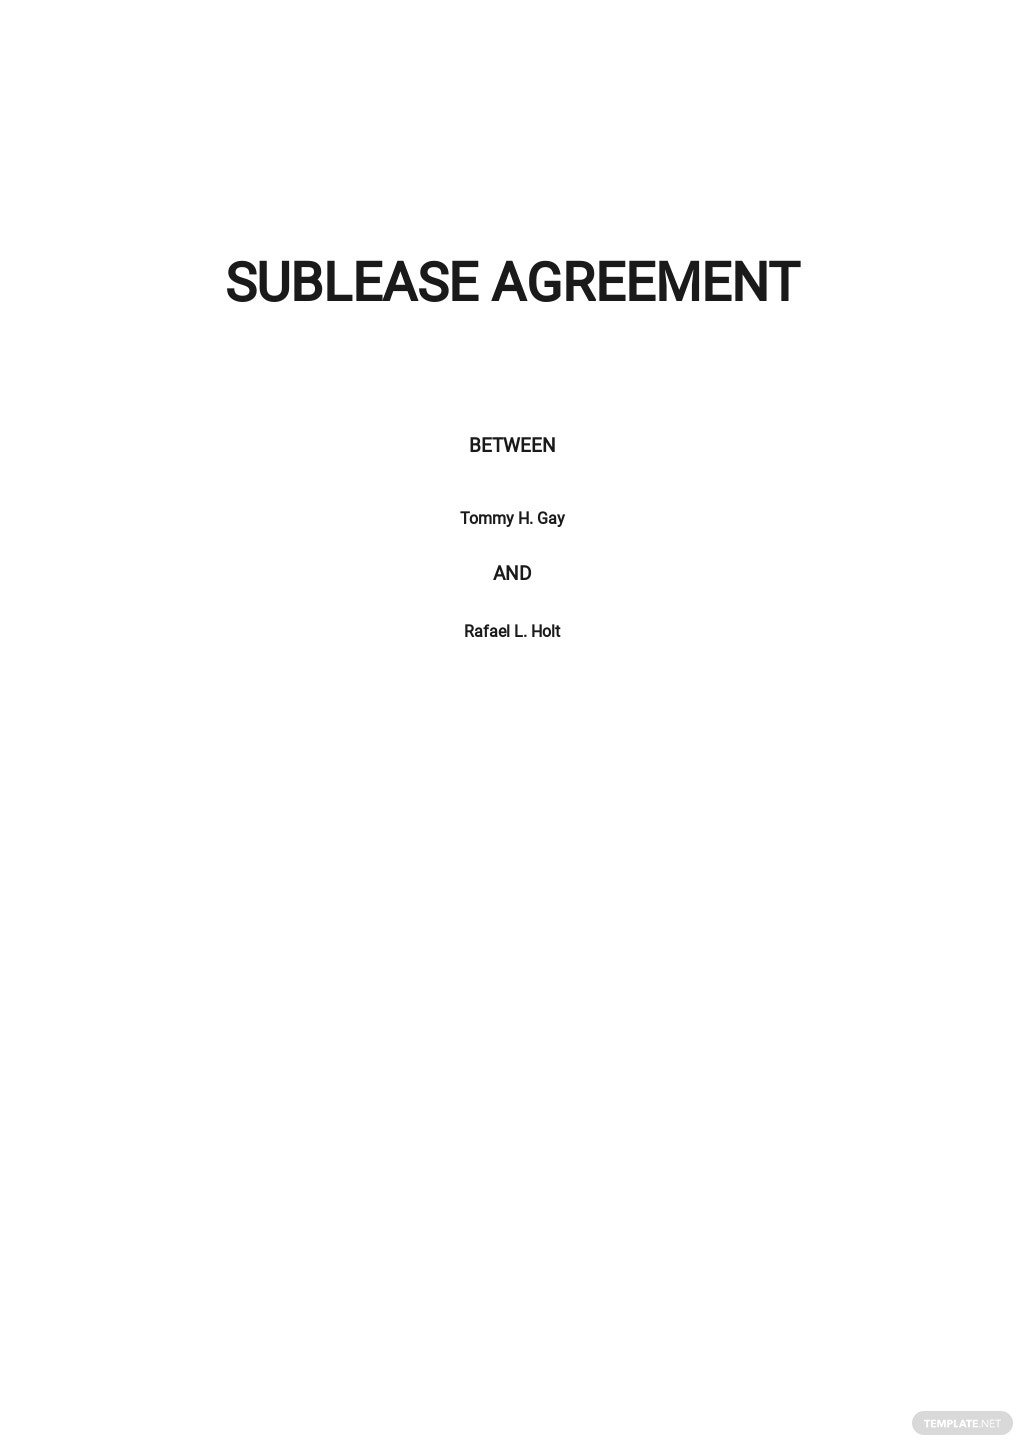 Sublease Agreement Template.jpe